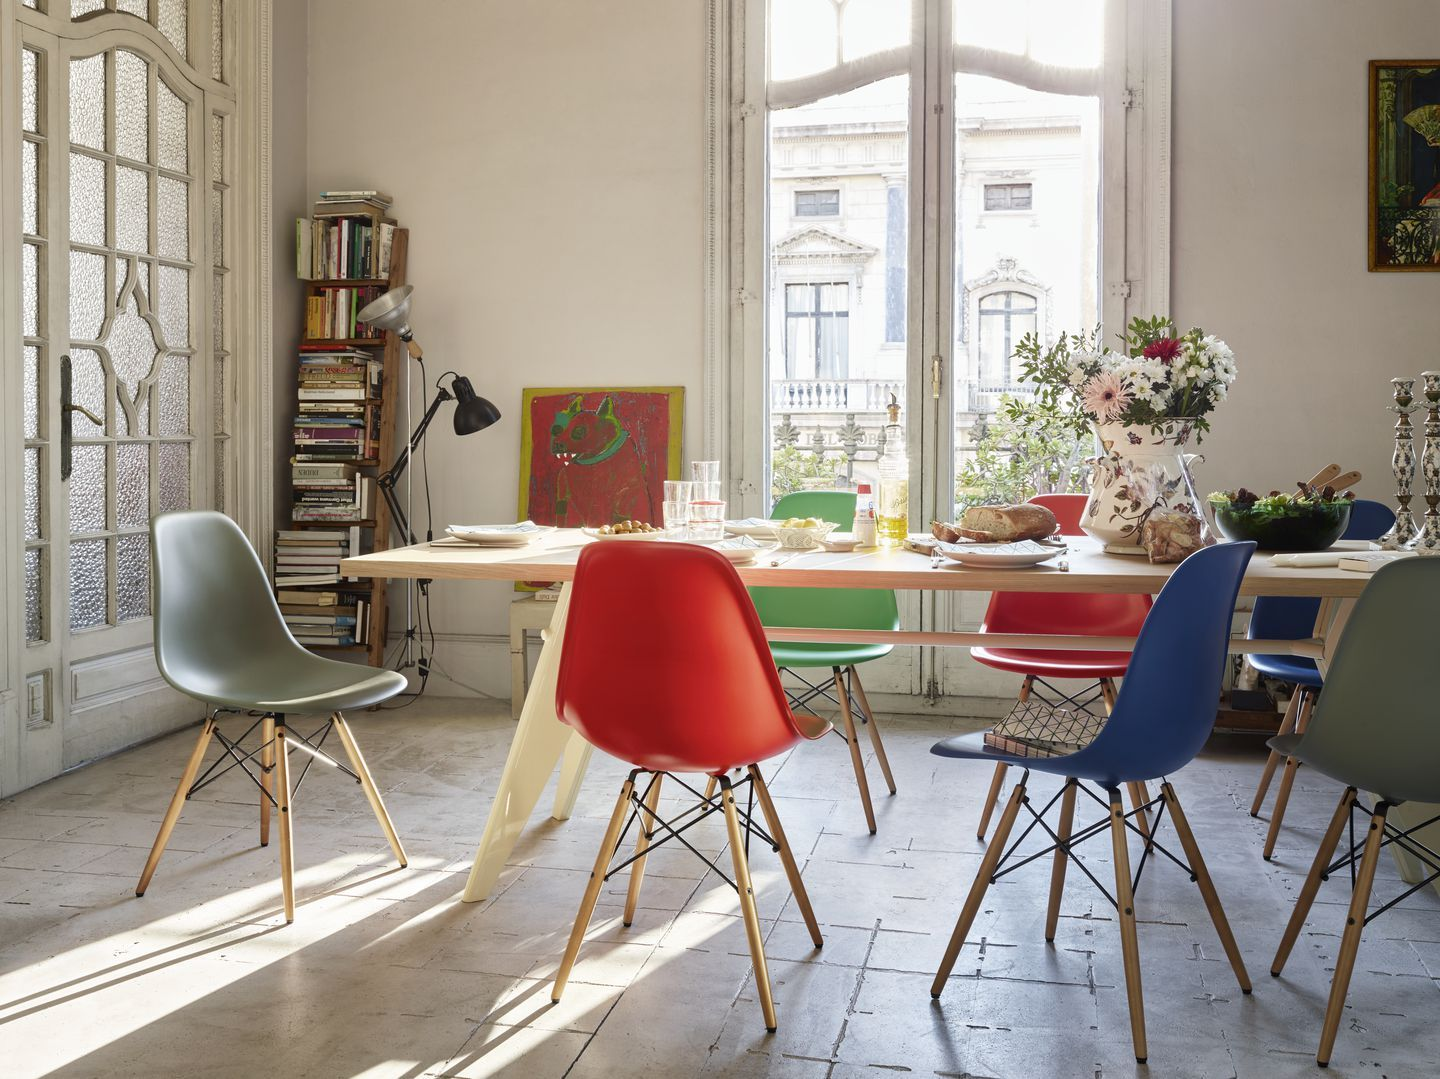 Vitra Sedia Rossa Eames Plastic Side Chair Dsw Maple Yellowish Base Nice Ideas